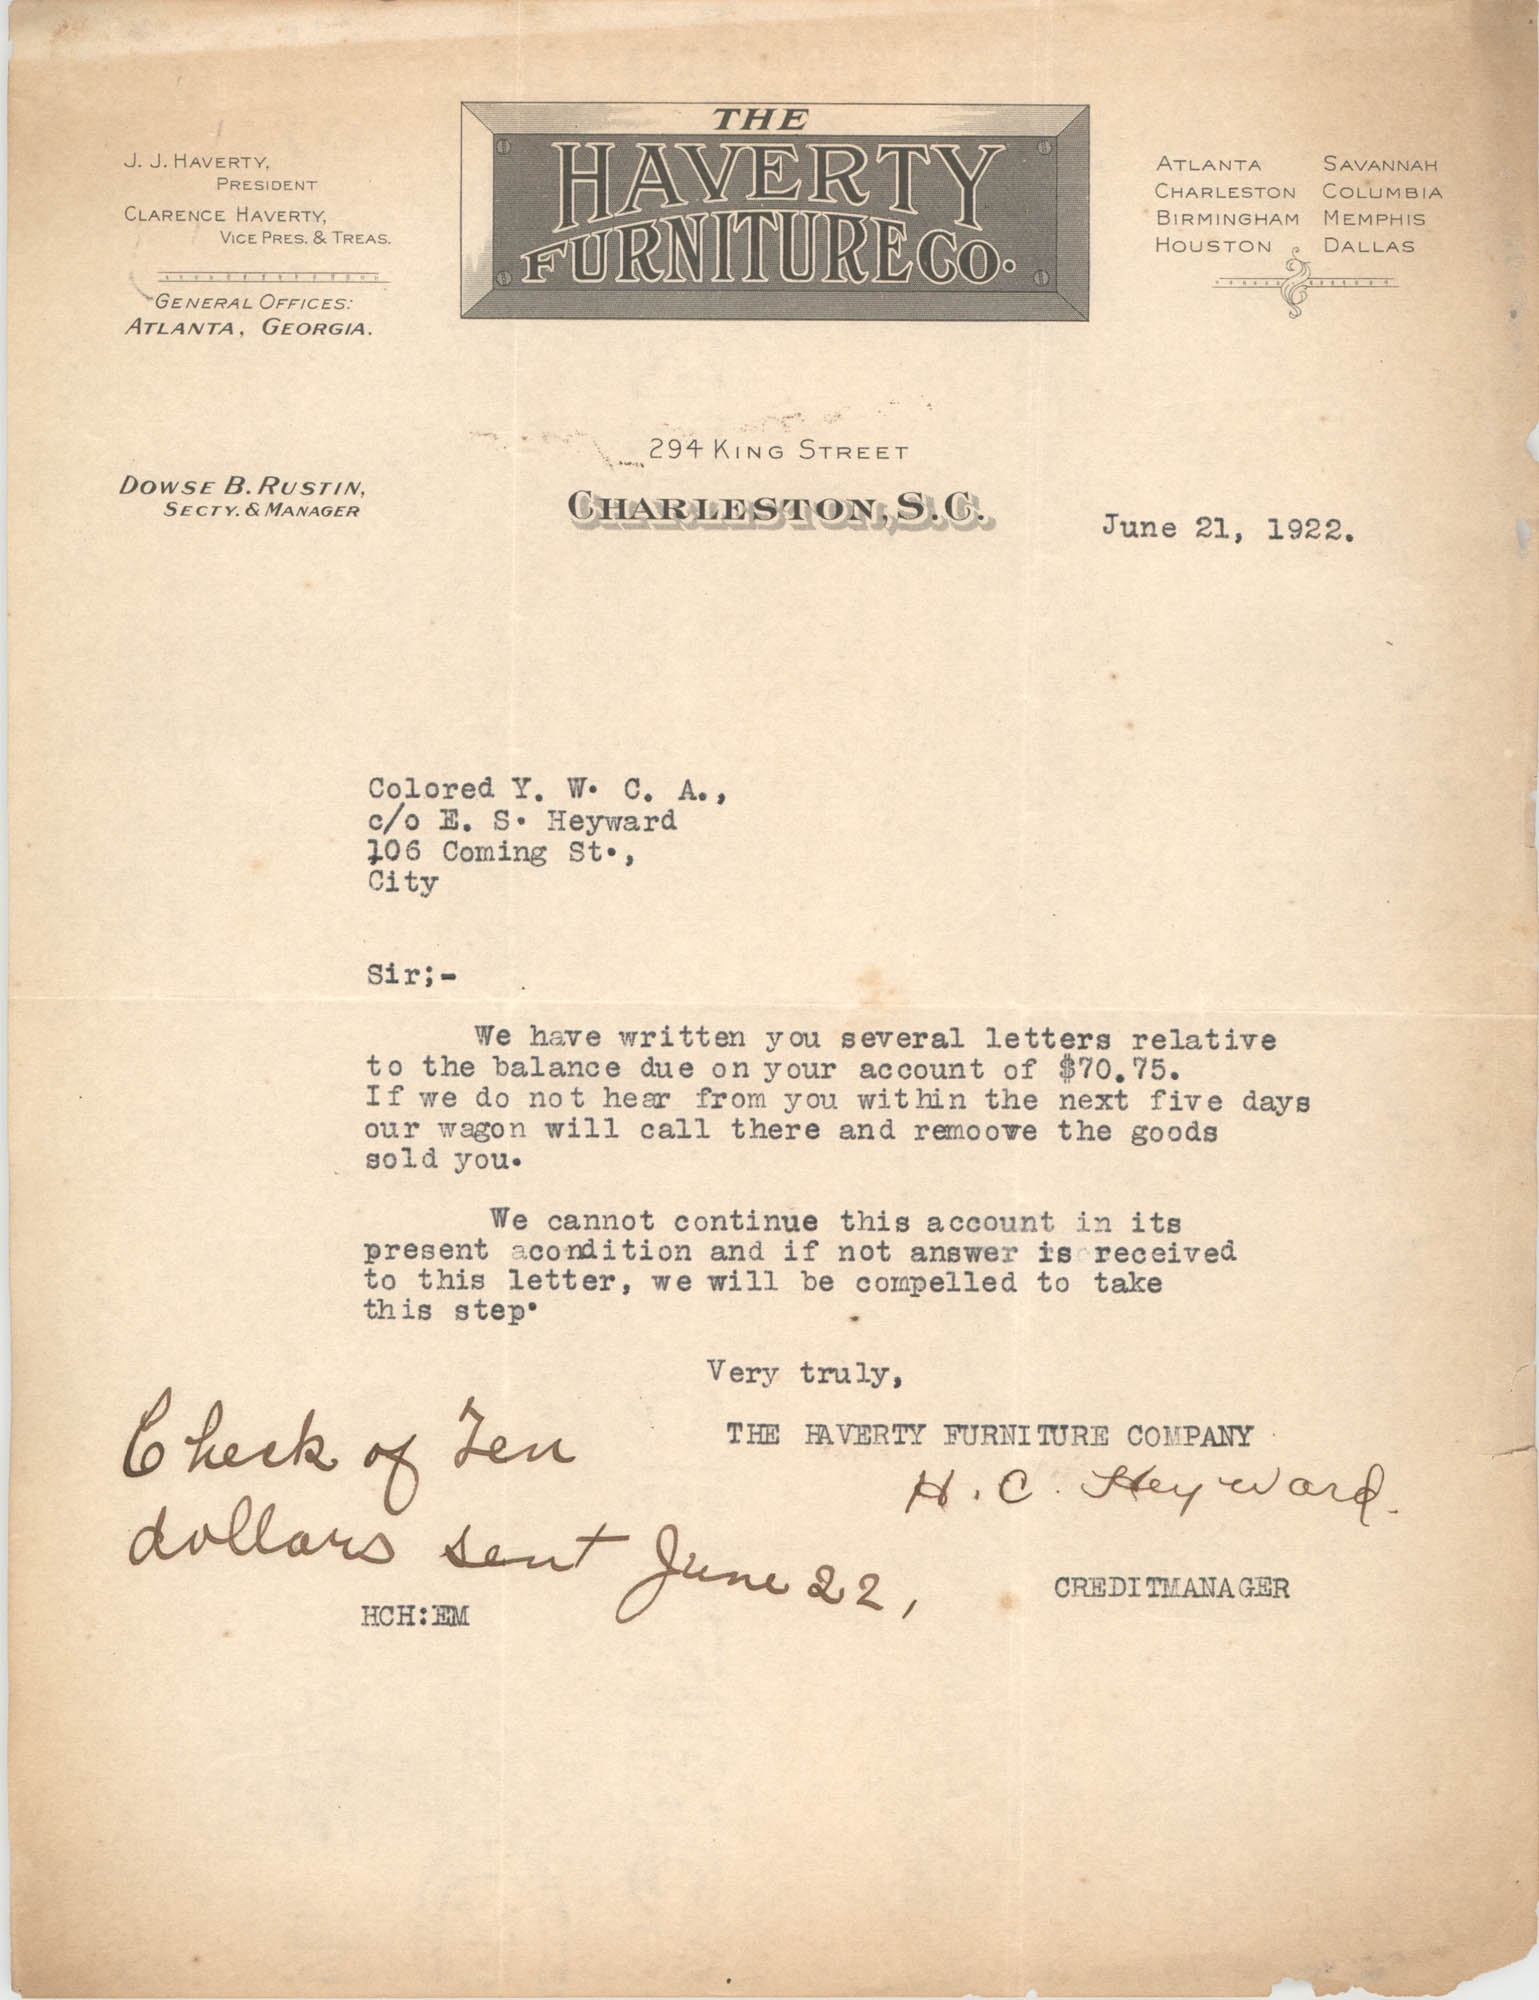 Letter from H. C. Heyward to Coming Street Y.W.C.A., June 21, 1922